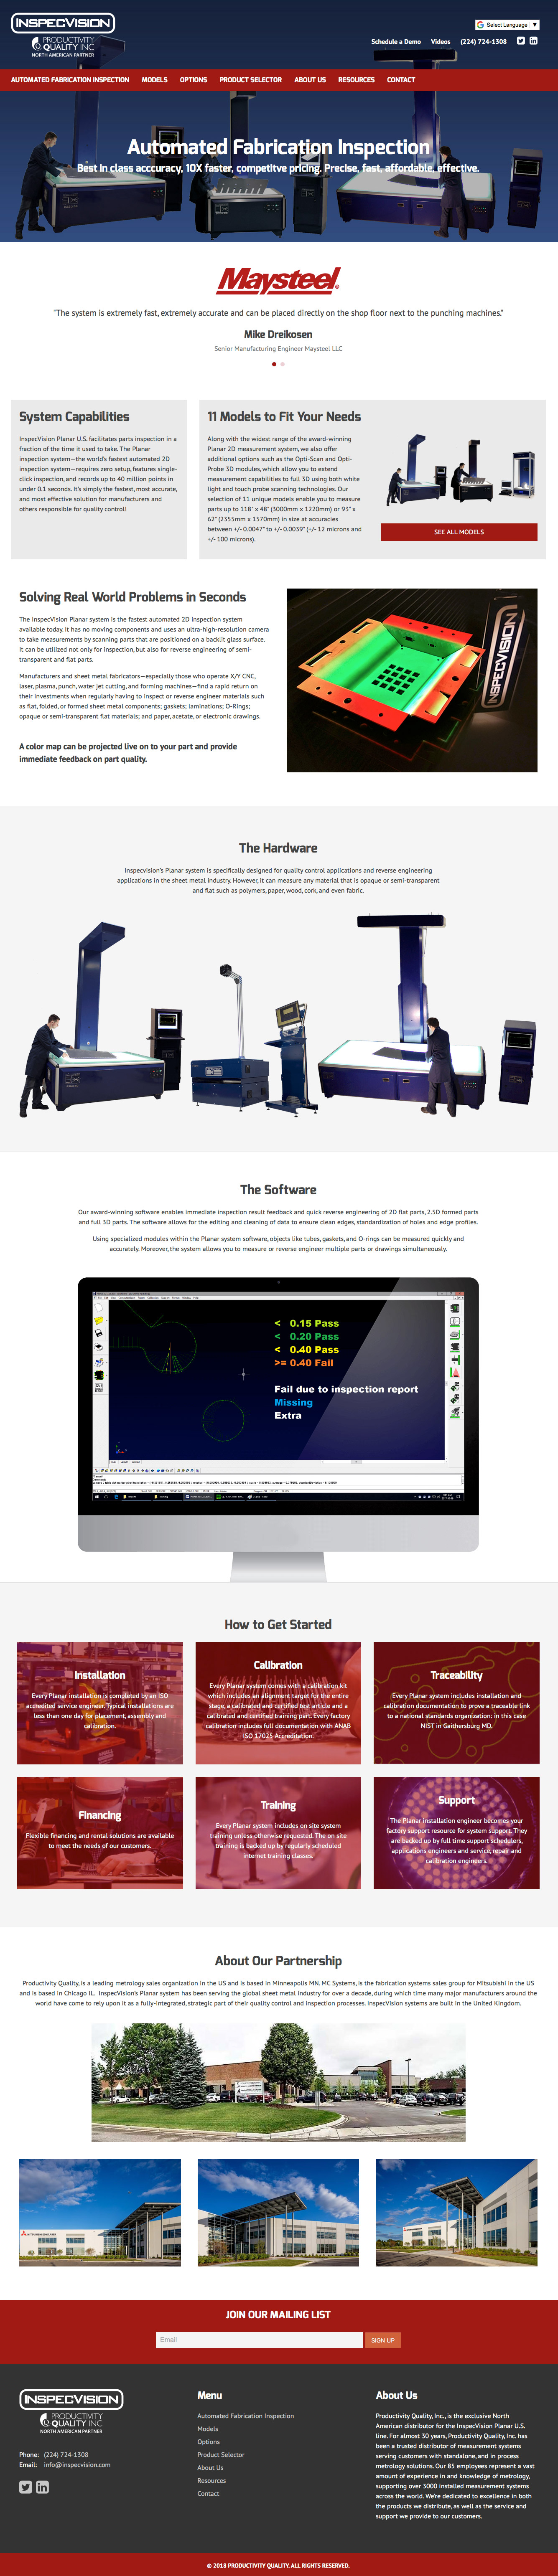 site-pq-page